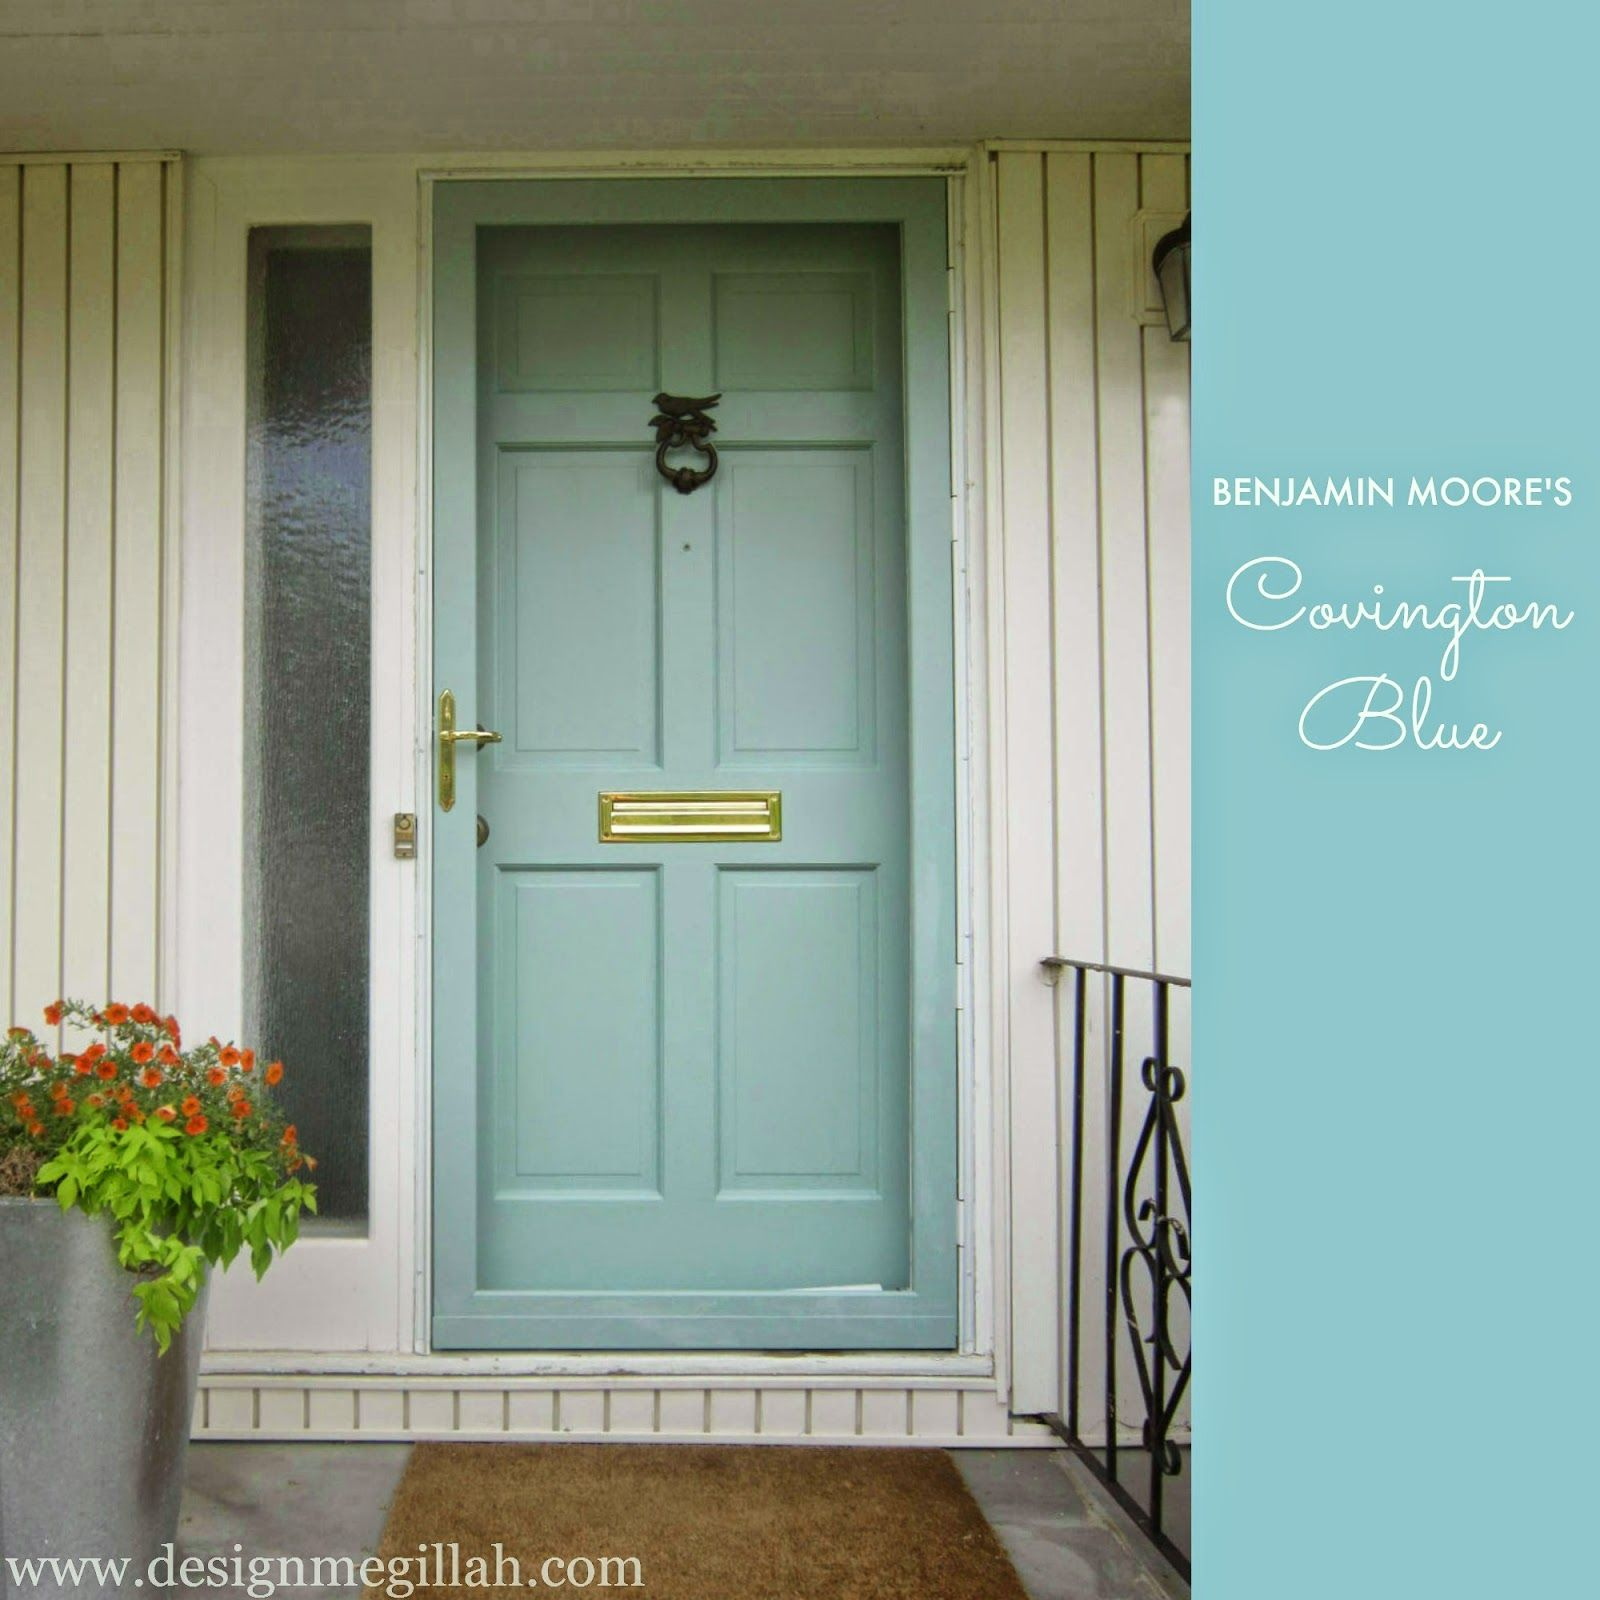 Benjamin moore covington blue color palettes pinterest for Benjamin moore ewing blue